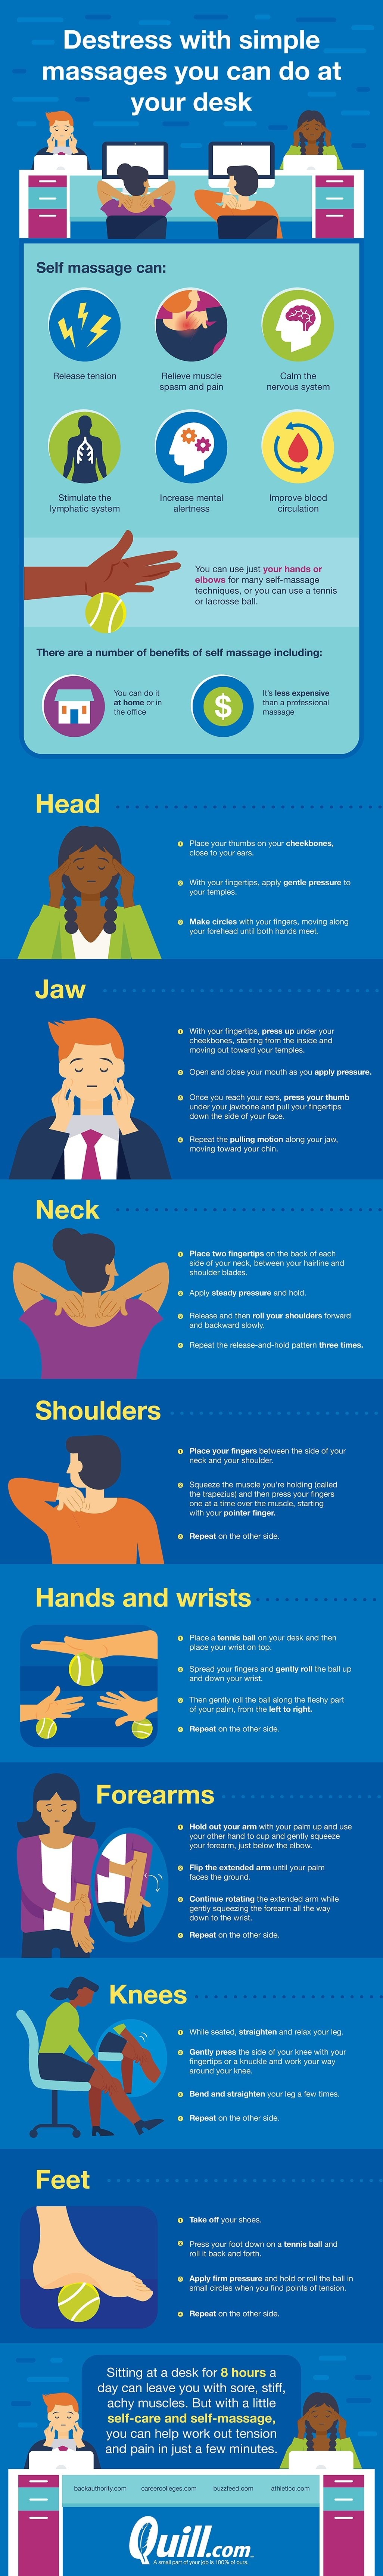 Destress with these simple massages you can do at your desk #infographic